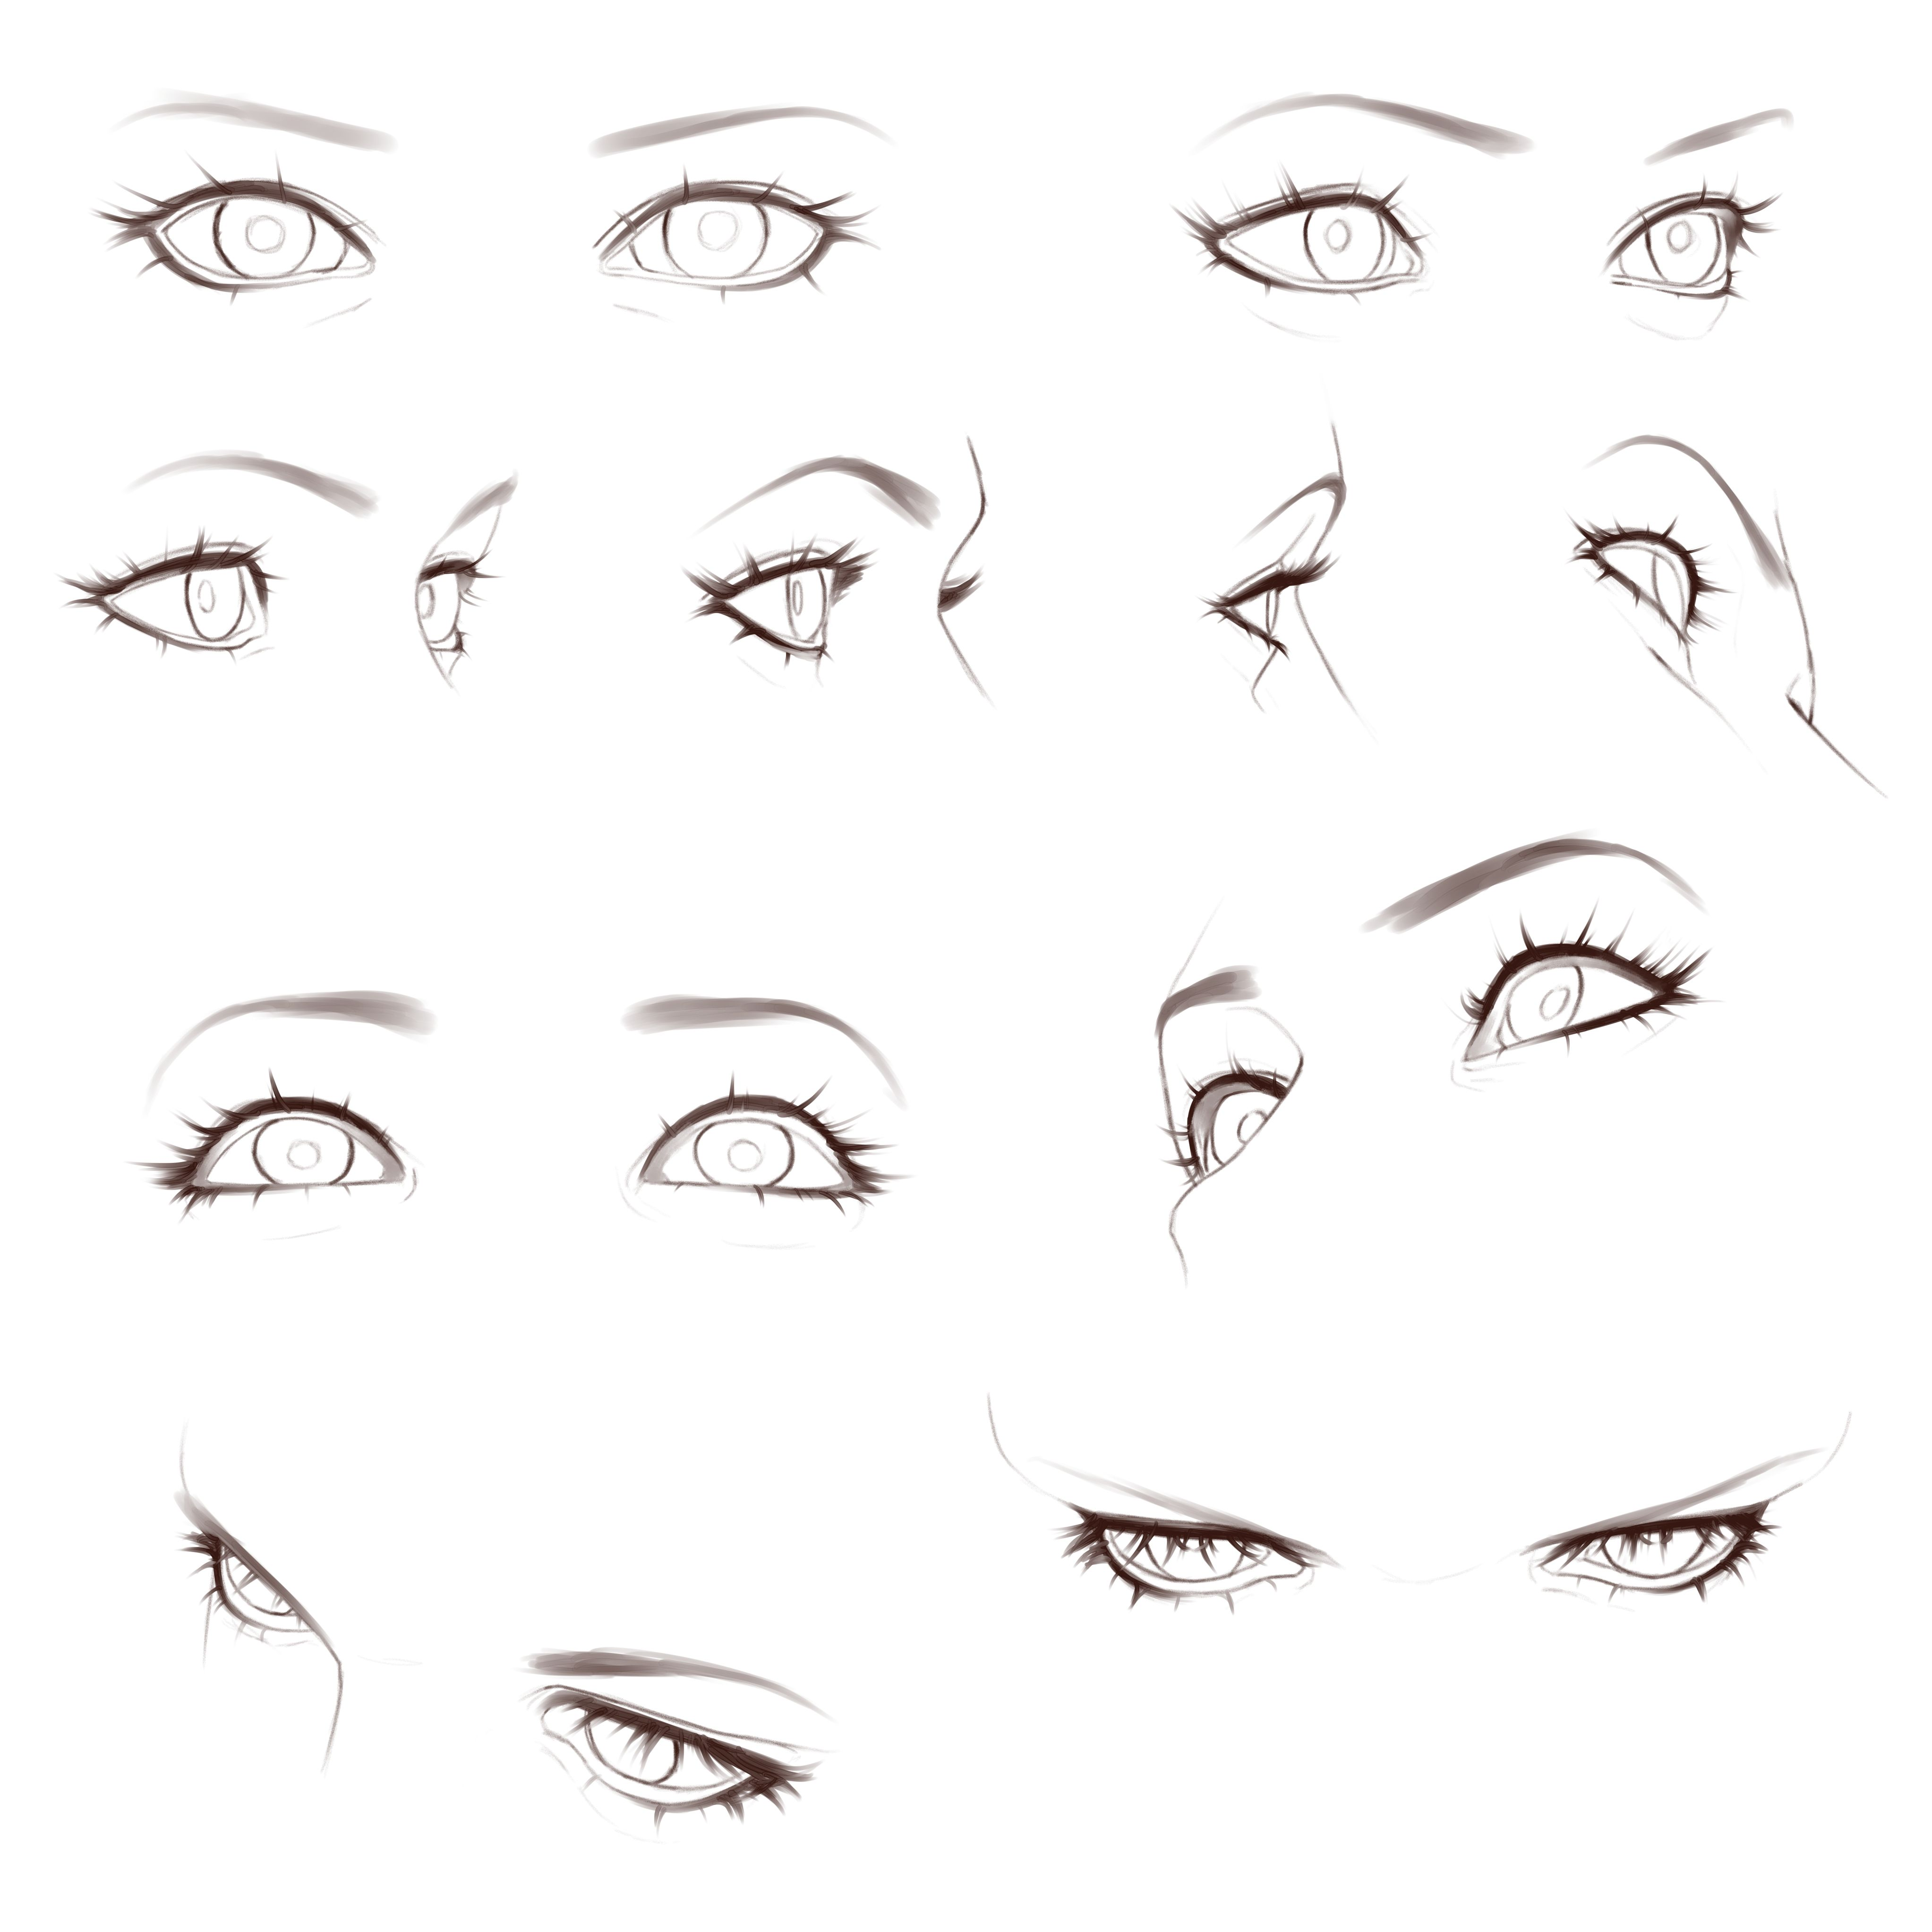 Guide To Rendering Expressive Eyes By Wajiha Clip Studio Tips In 2020 Anime Eye Drawing Eye Drawing Tutorials How To Draw Anime Eyes